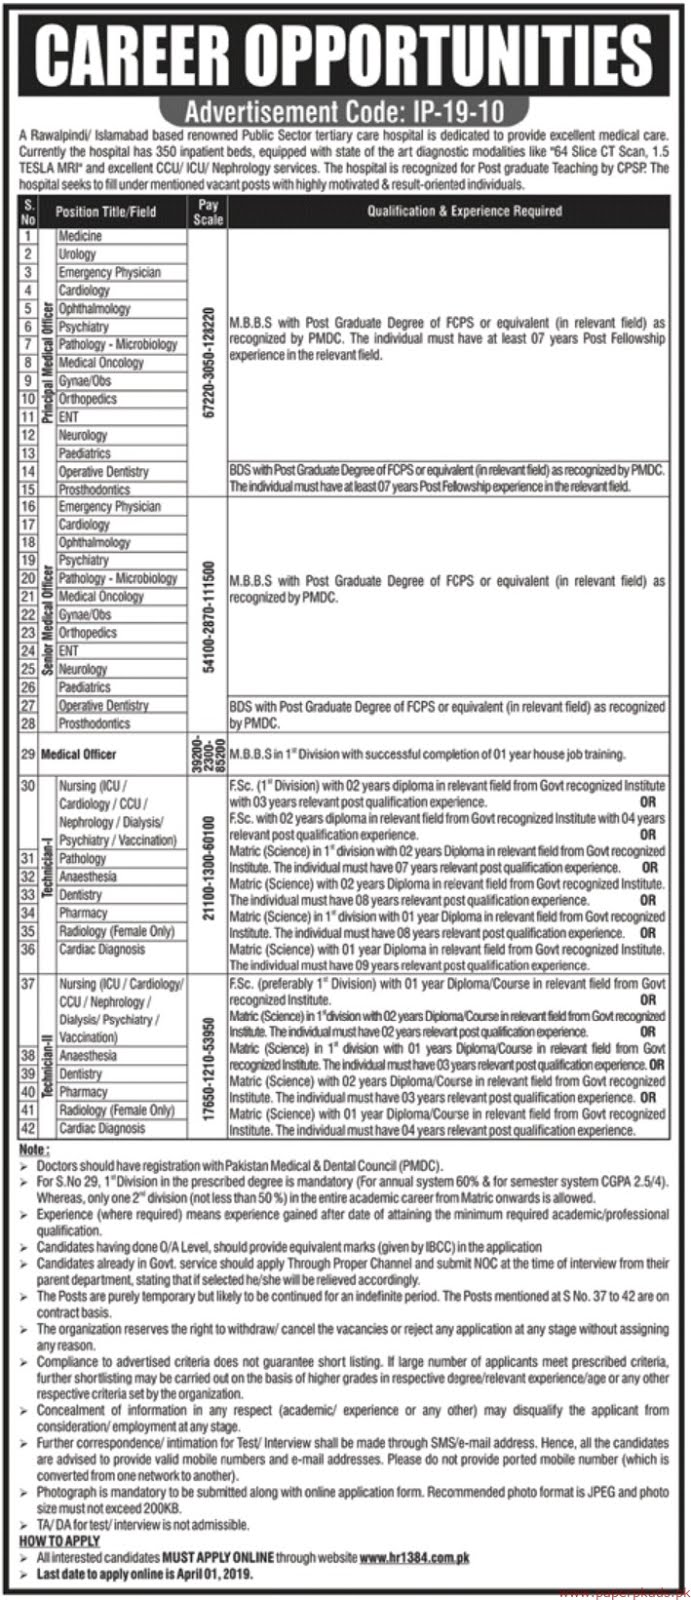 Tertiary Care Hospital Jobs 2019 Latest